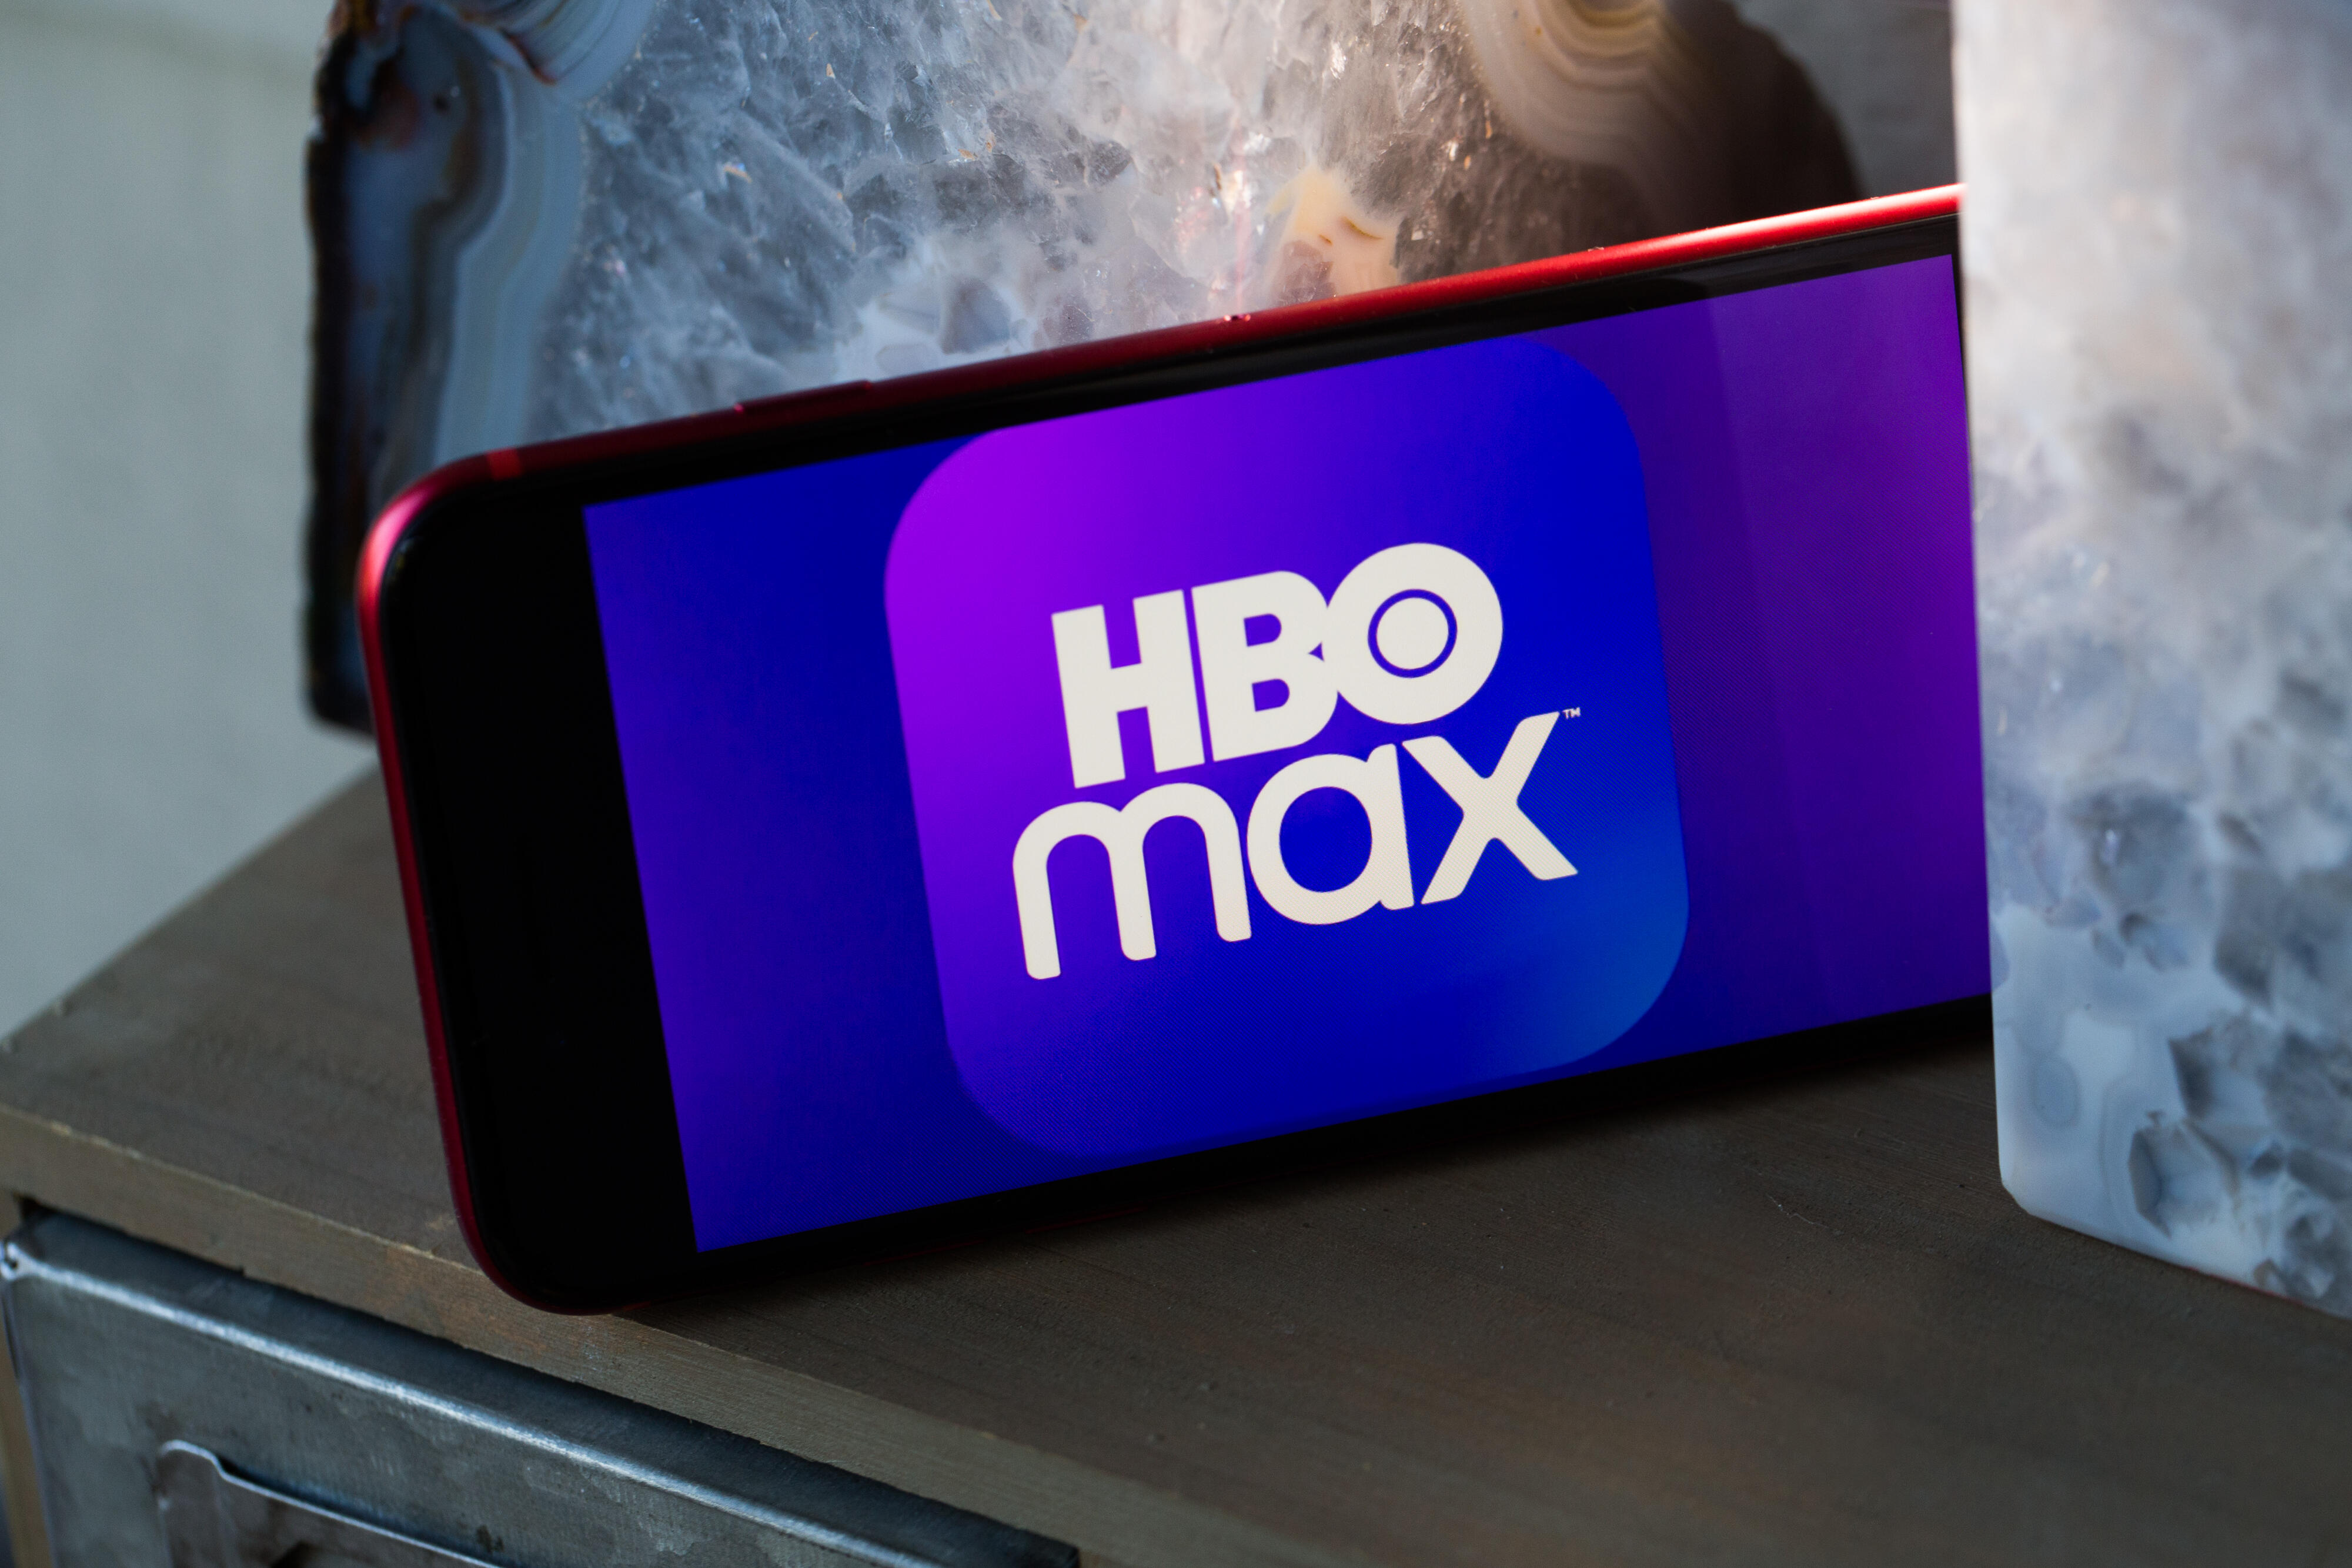 hbo-max-logo-phone-2780